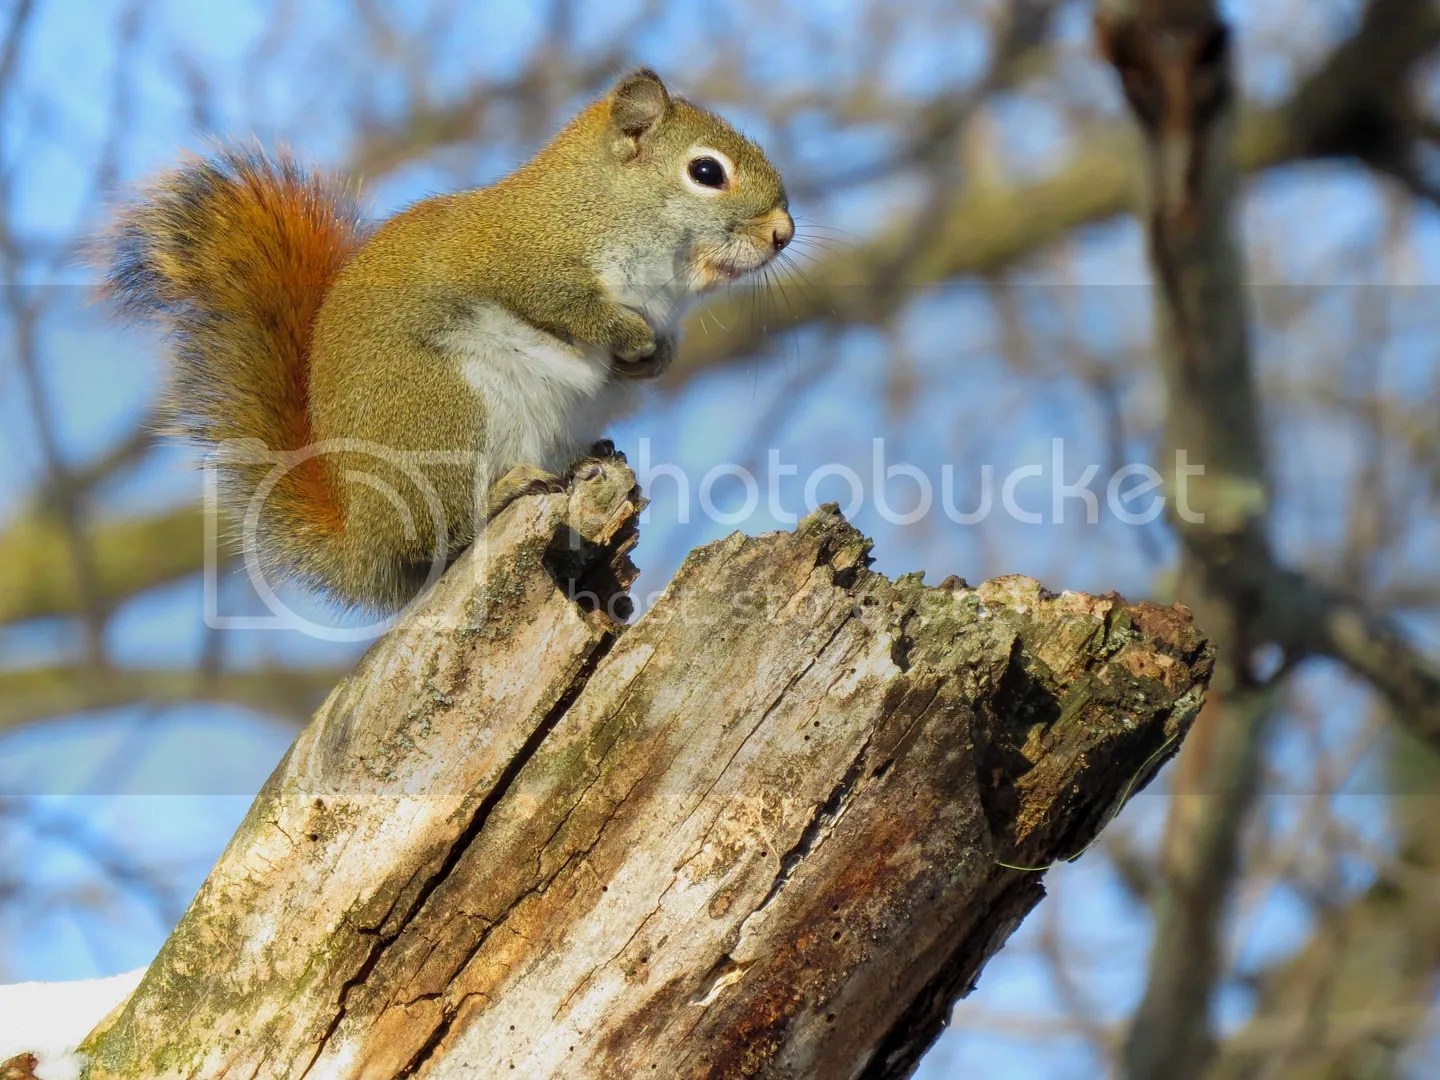 Winter Red Squirrel photo IMG_7285_zps1508ea20.jpg